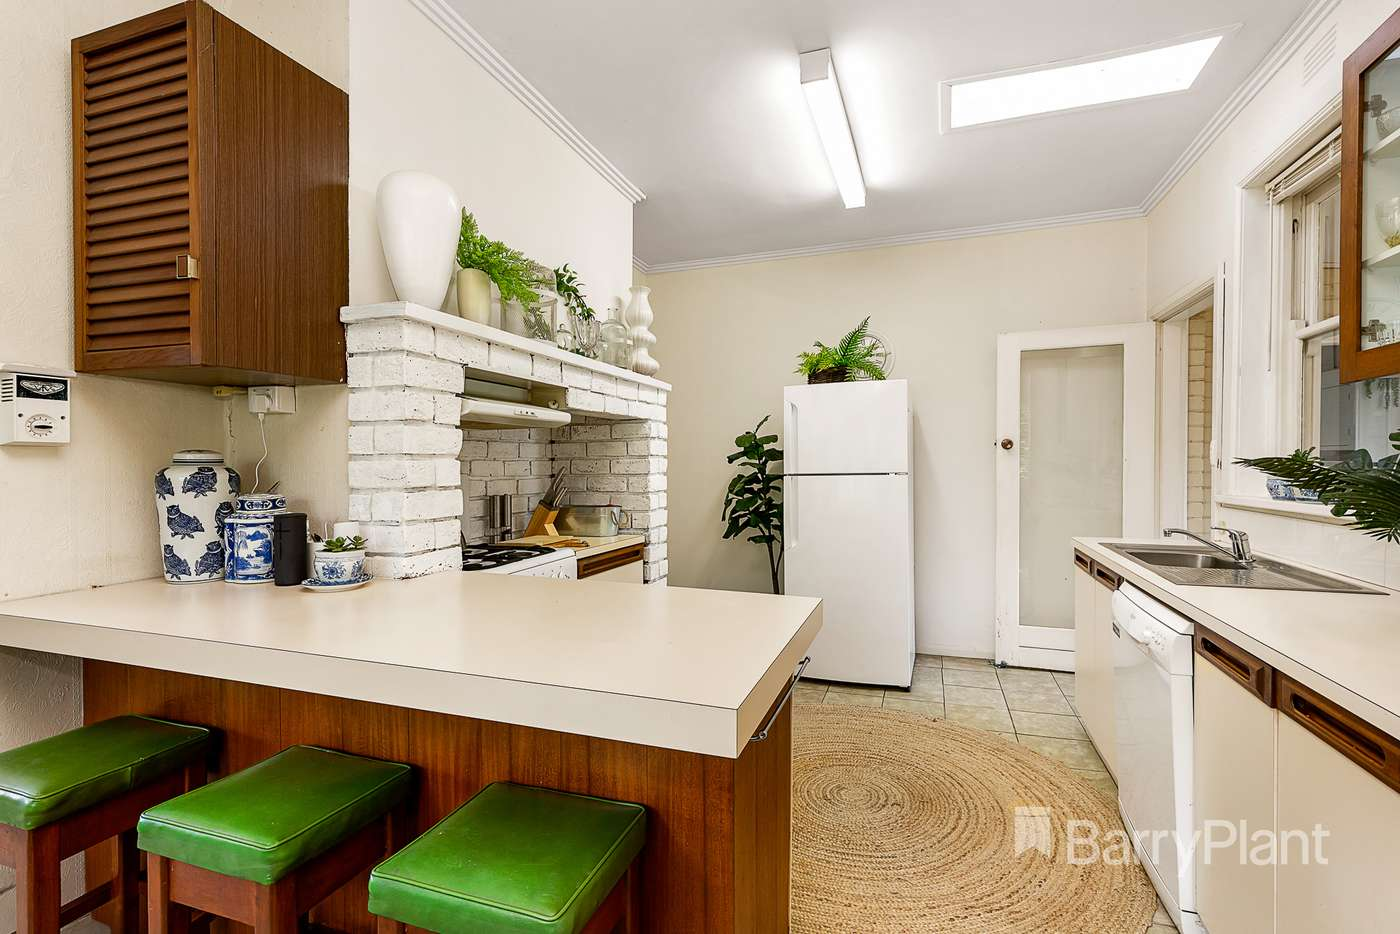 Fifth view of Homely house listing, 8 Gordon Street, Beaumaris VIC 3193